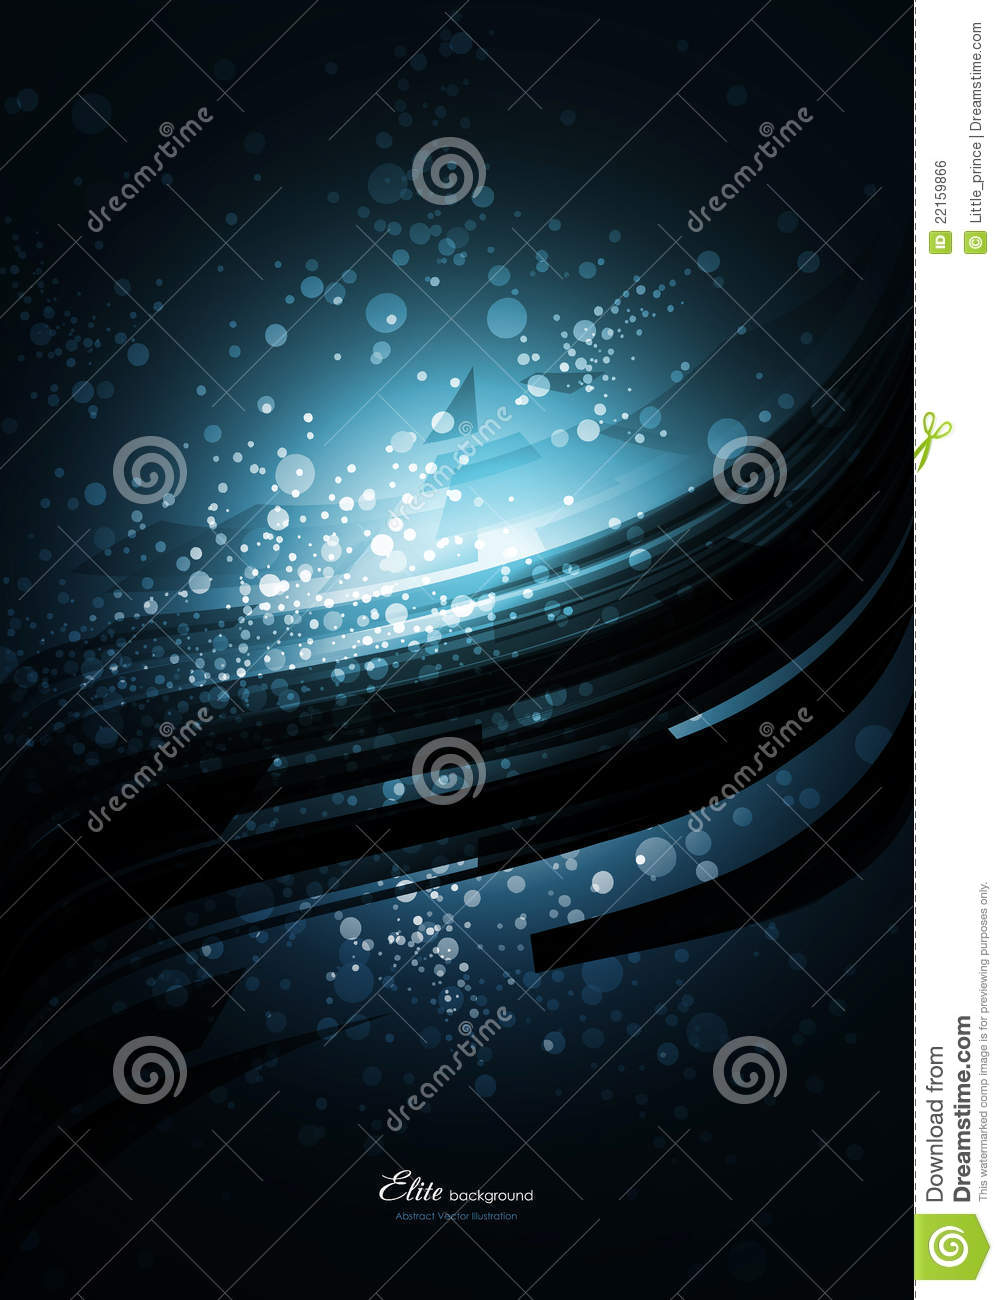 Blue Technology: Black Abstract Technology Background Royalty Free Stock